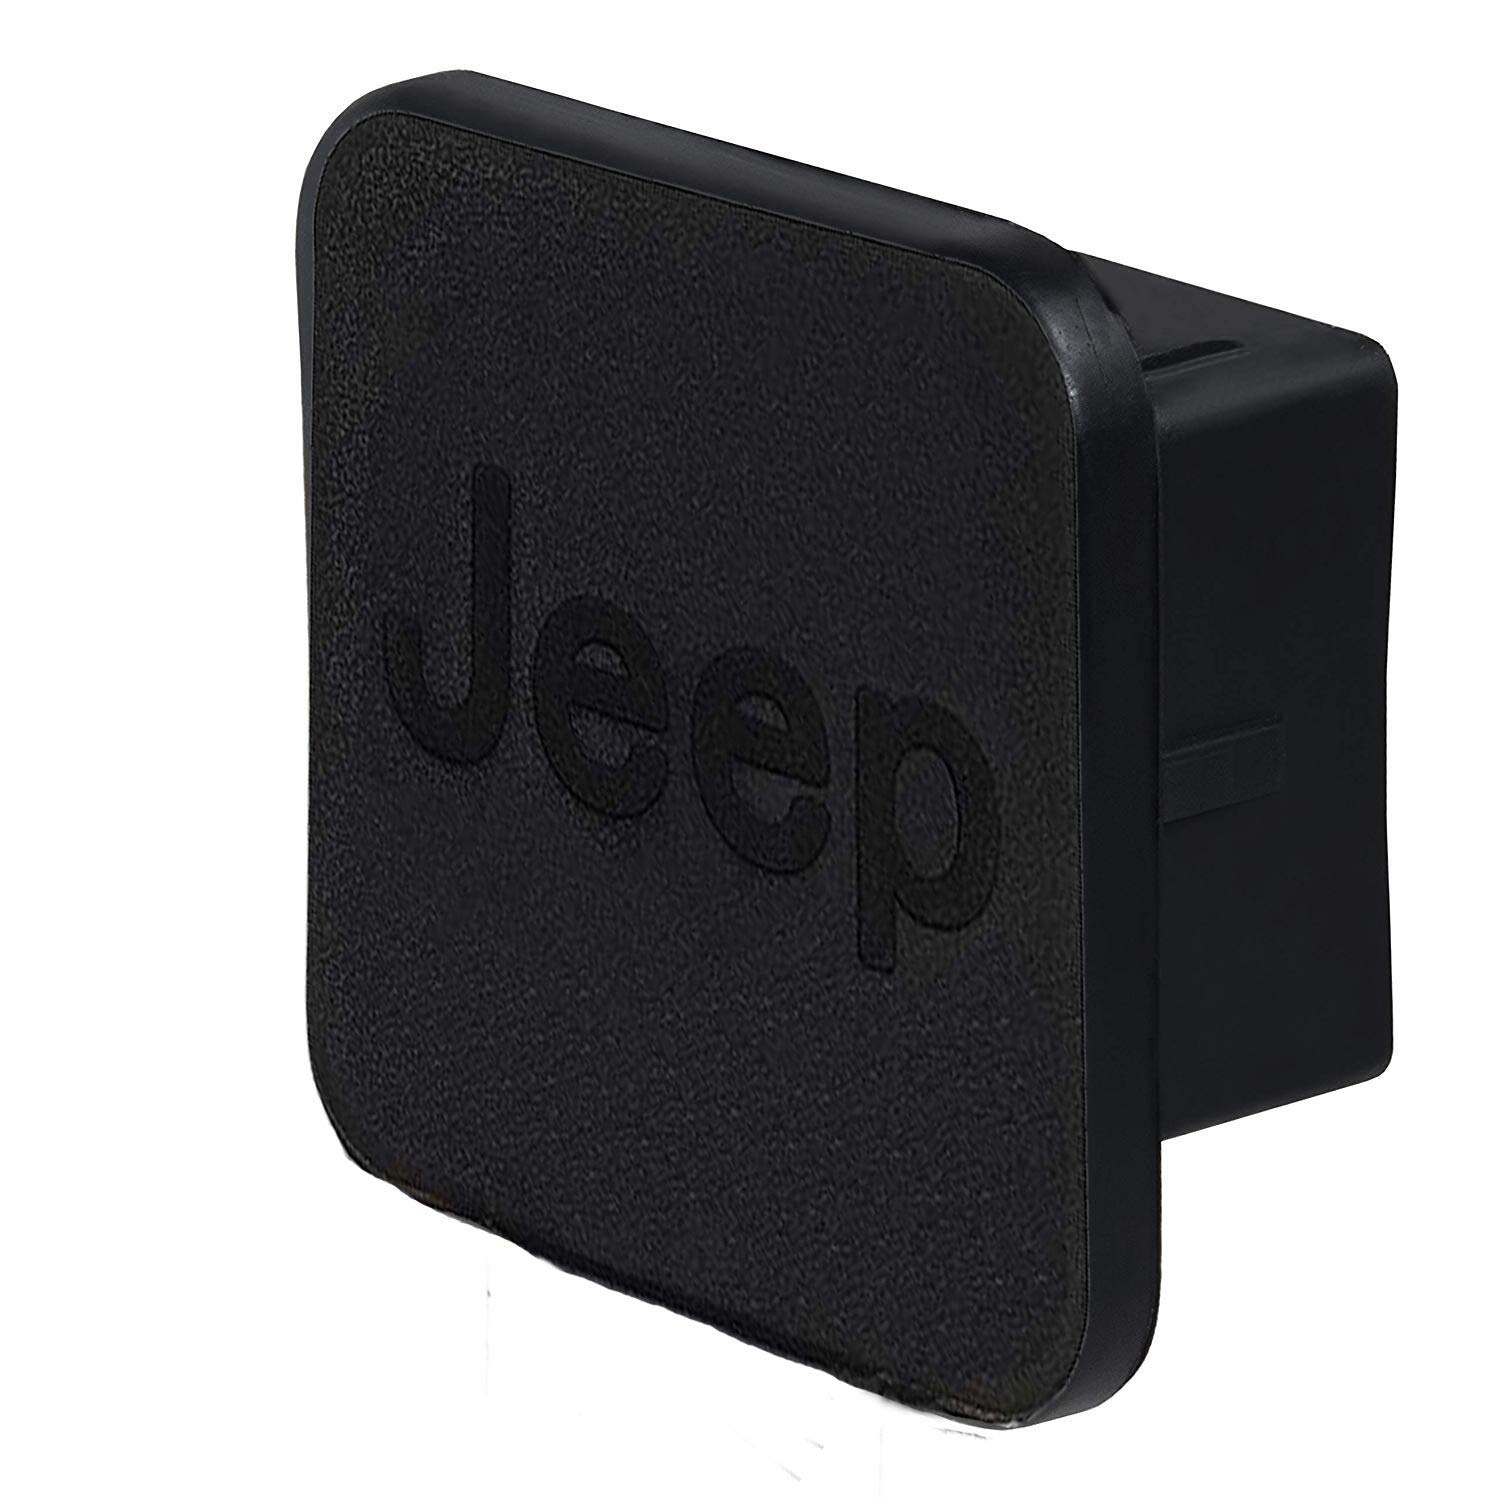 Car Trailer Hitch Cover,with Jeep Logo for Jeep Accessories Receiver Tube Hitch Plug(Black) (for Jeep) by BoJie Car